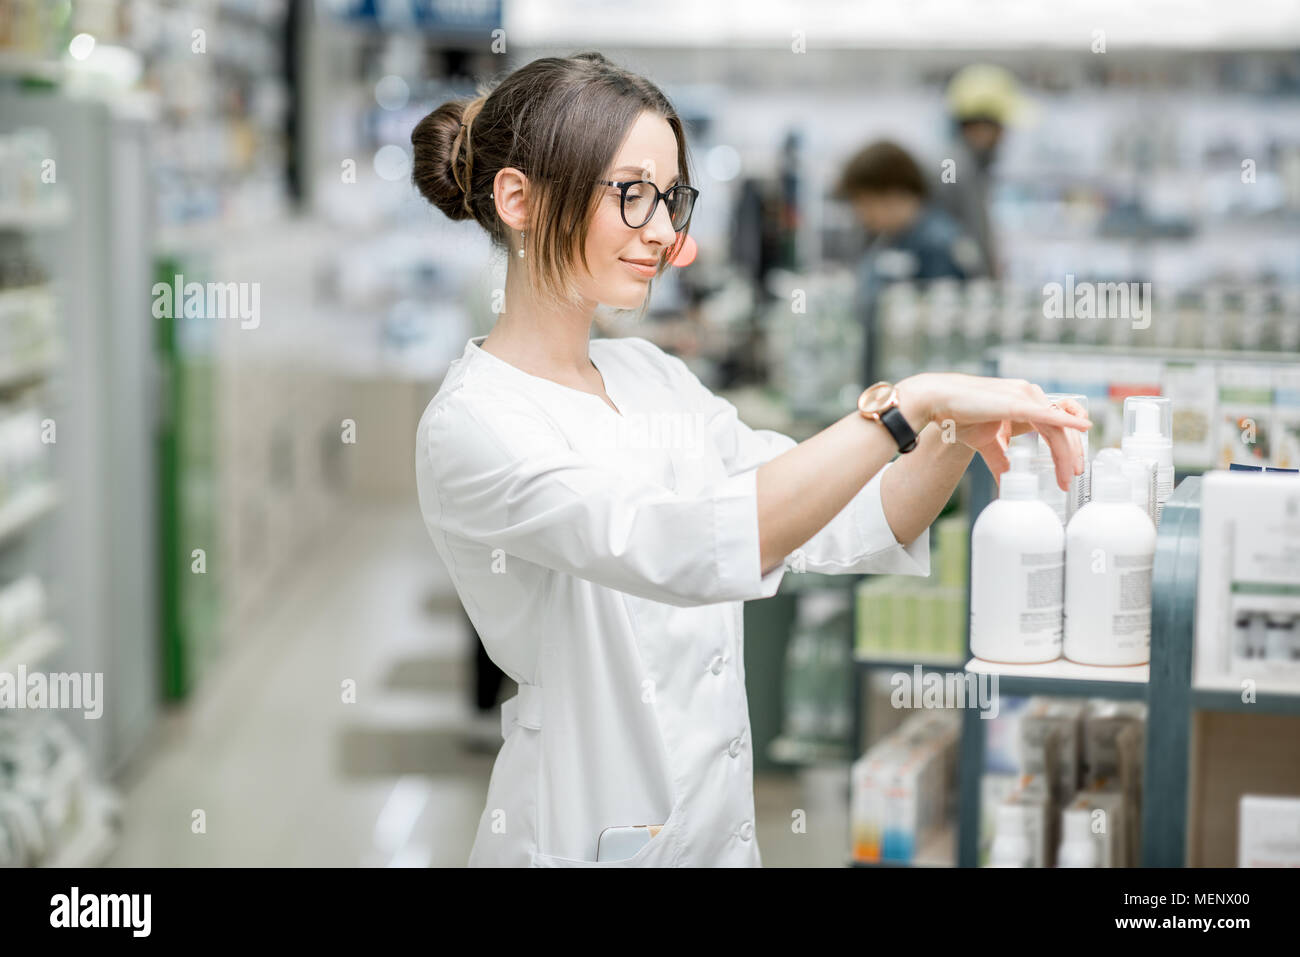 Pharmacist working in the pharmacy store - Stock Image